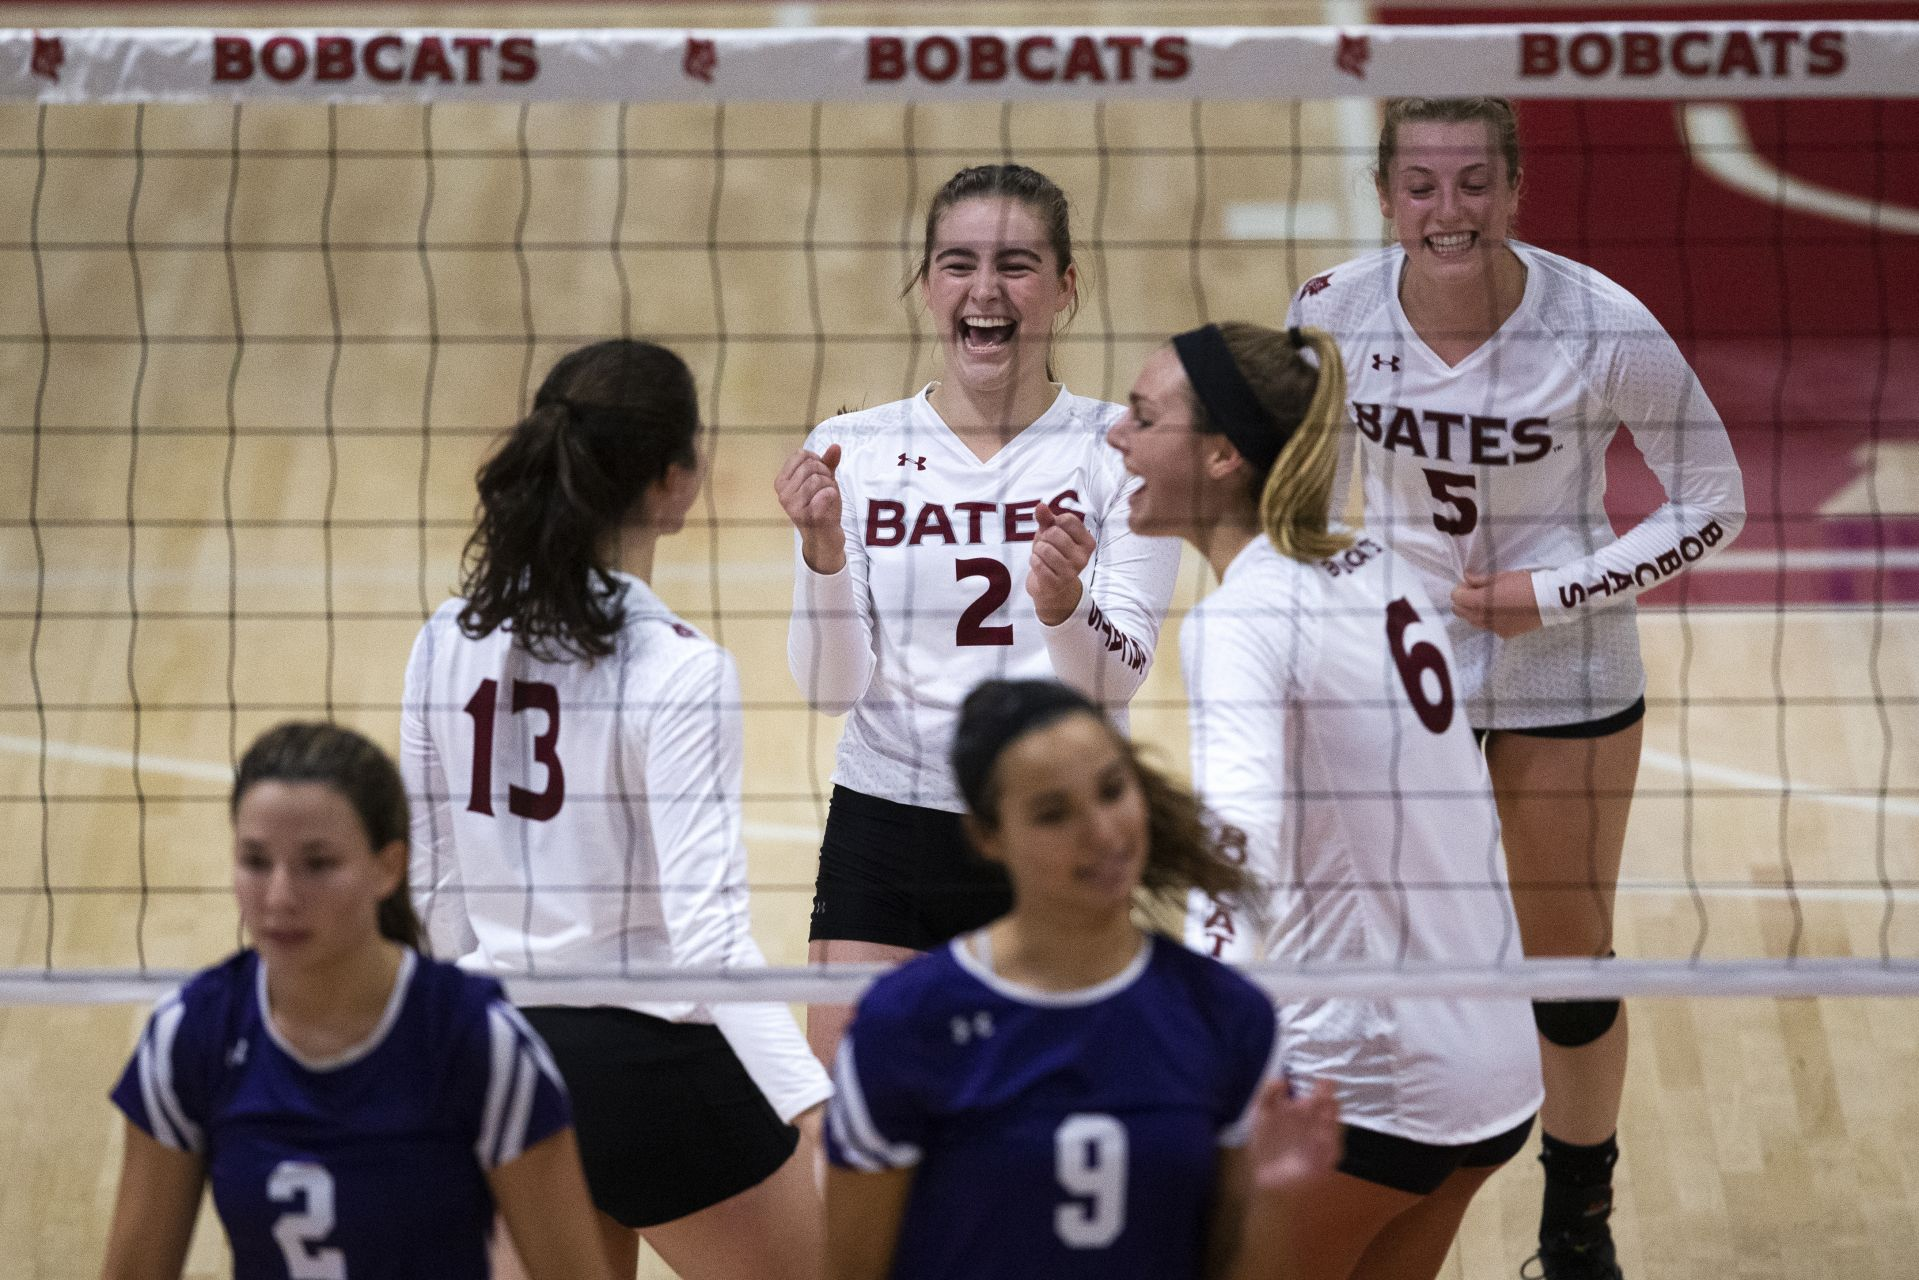 Bates loses to Amherst 3-2 at Bates Reacting to a winning point vs. Amherst during their match on Sept. 21 are volleyball players Samantha Schecter '20 of Riverside, Conn., Emma Eide '23 of Ramsey, N.J., Delaney Mayfield '21 of Santa Barbara, Calif., and Olivia McCulloch '21 of Sunderland, Mass.